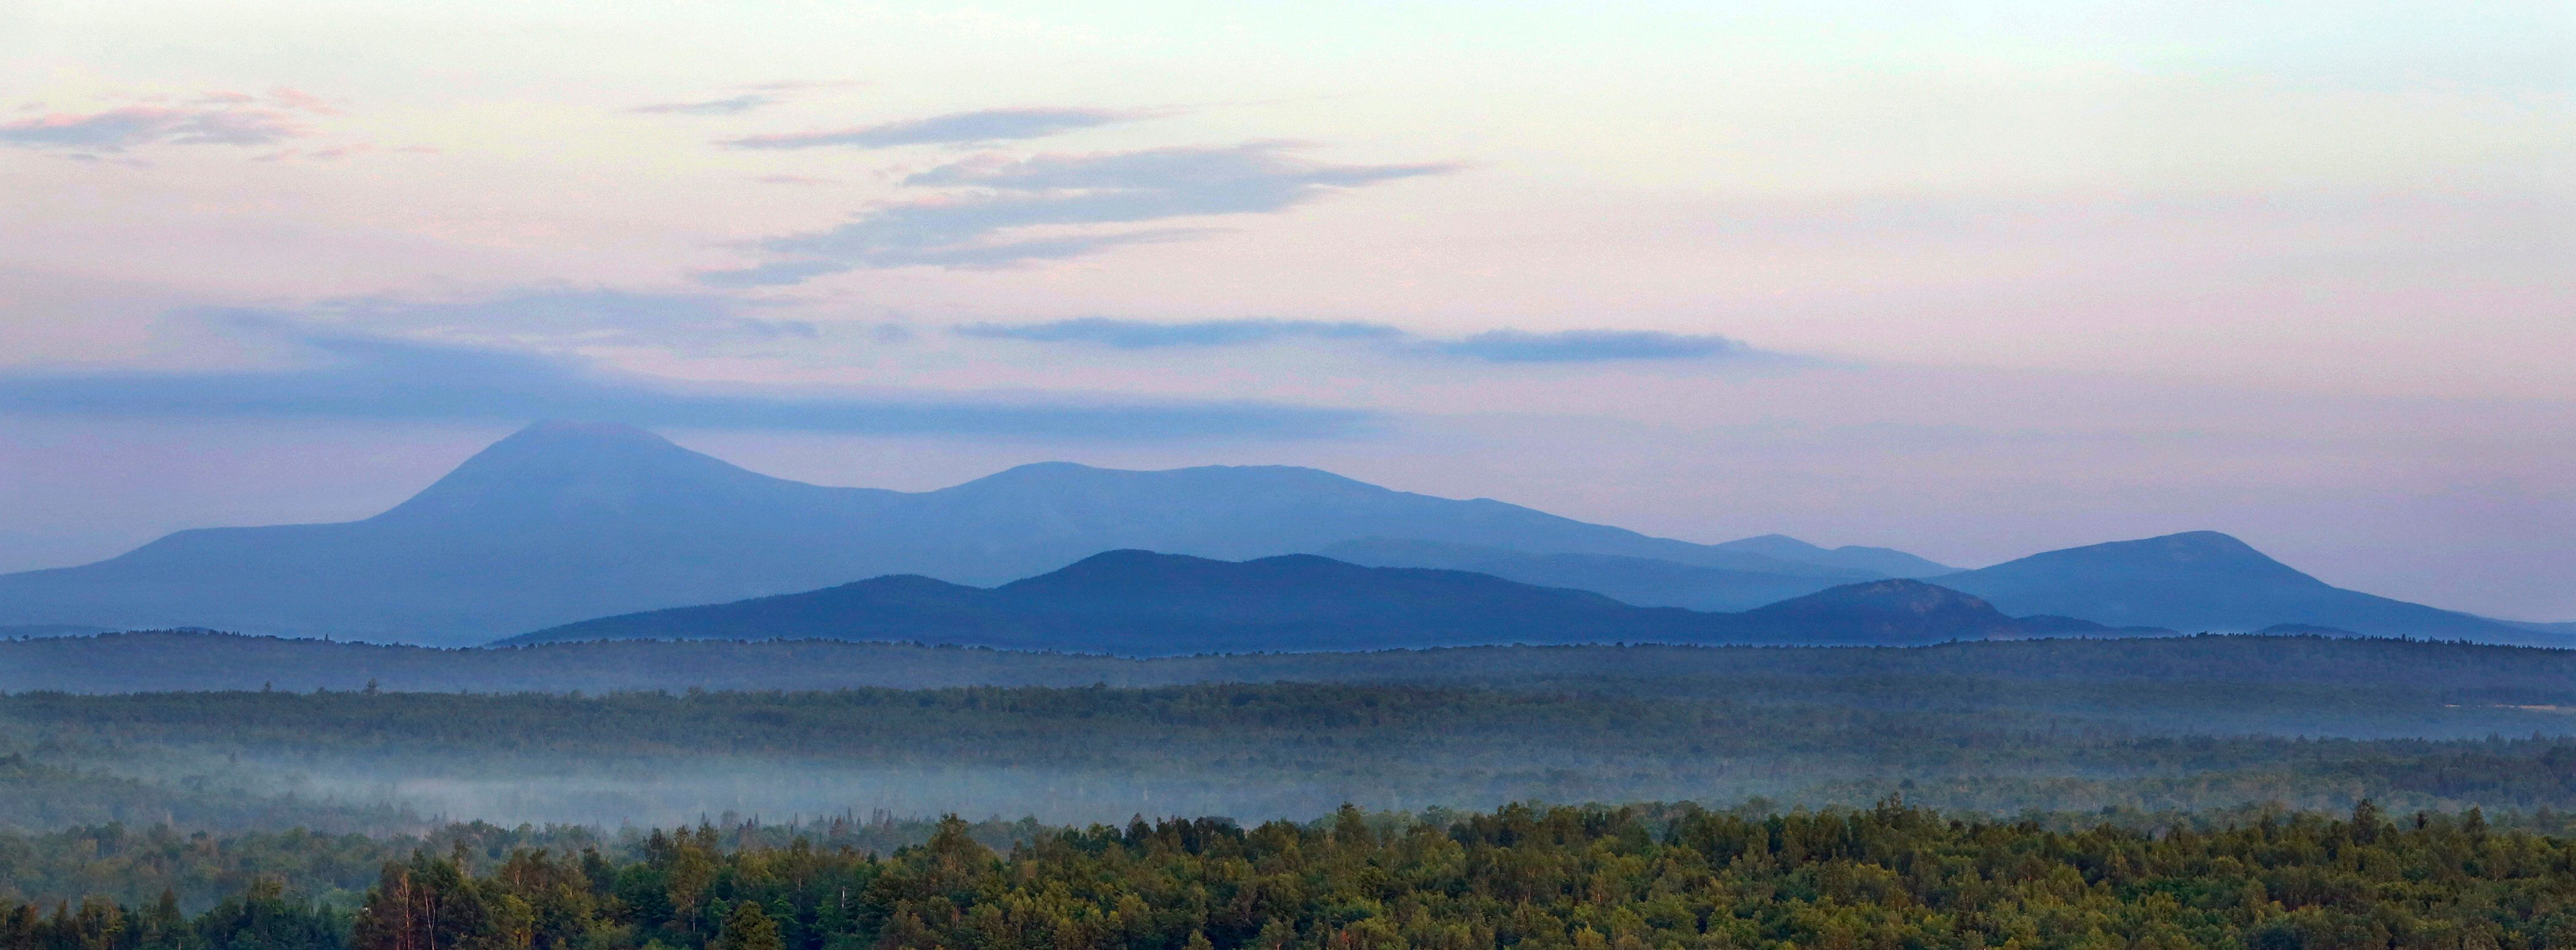 PATTEN, ME - July 15: Early morning haze colors Mount Katahdin and its surrounding mountains on Tuesday, July 15, 2014, seen from a height of land along Route 11 in Patten. The viewpoint is part of the Katahdin Woods & Waters scenic byway. (Photo by Gregory Rec/Portland Press Herald via Getty Images)